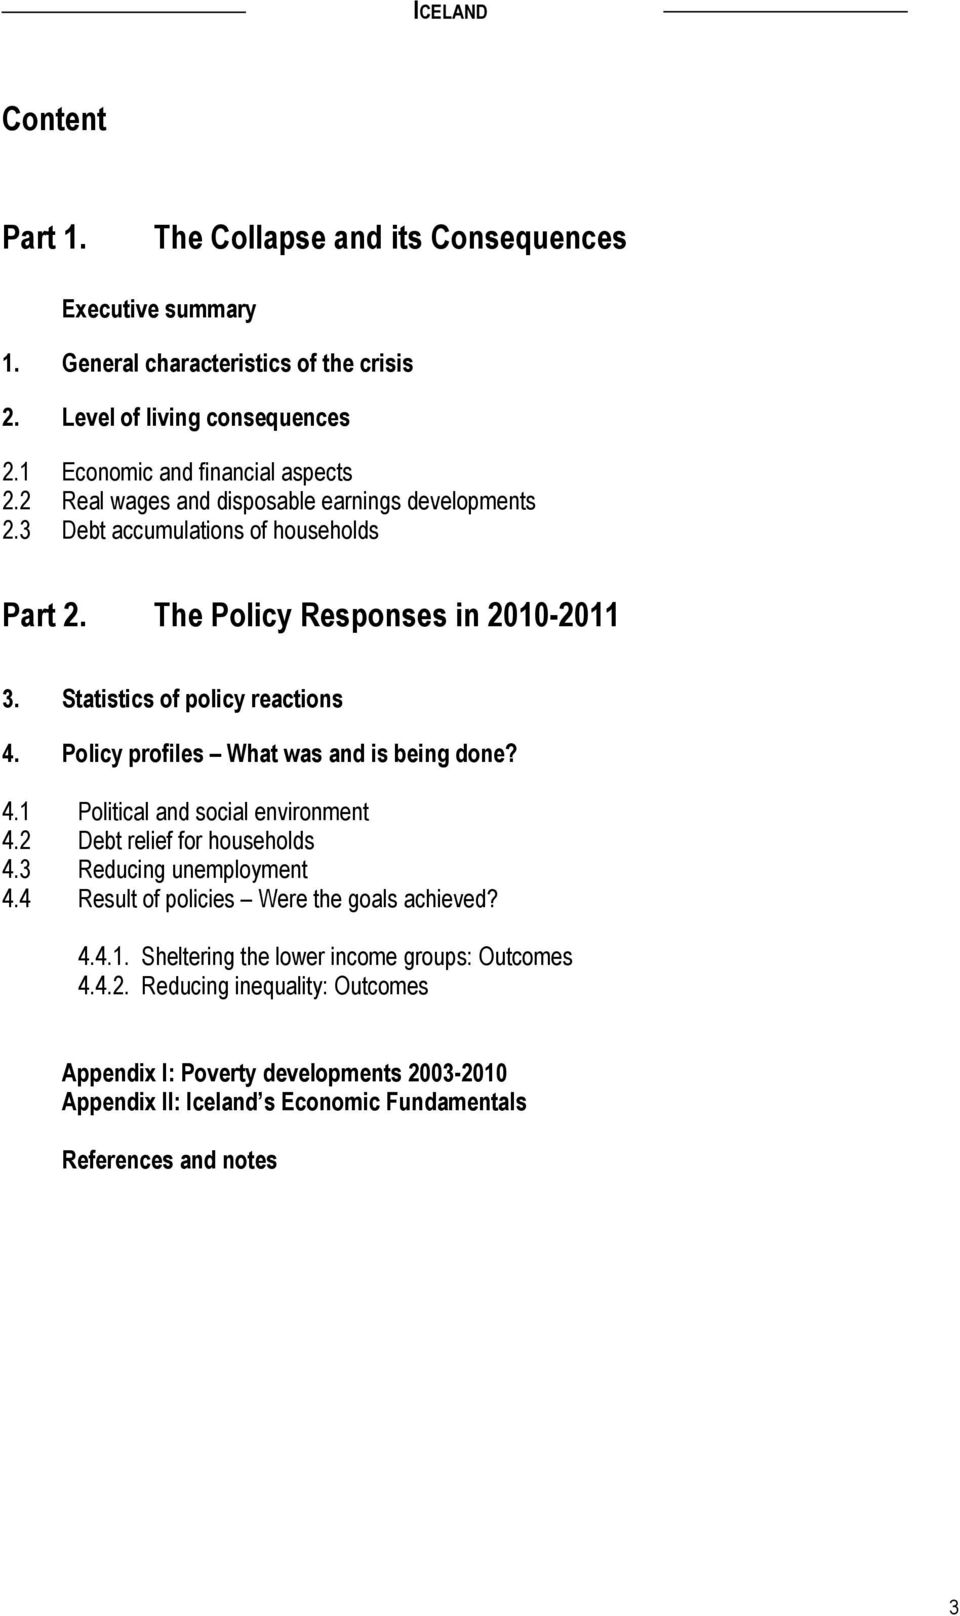 Policy profiles What was and is being done? 4.1 Political and social environment 4.2 Debt relief for households 4.3 Reducing unemployment 4.